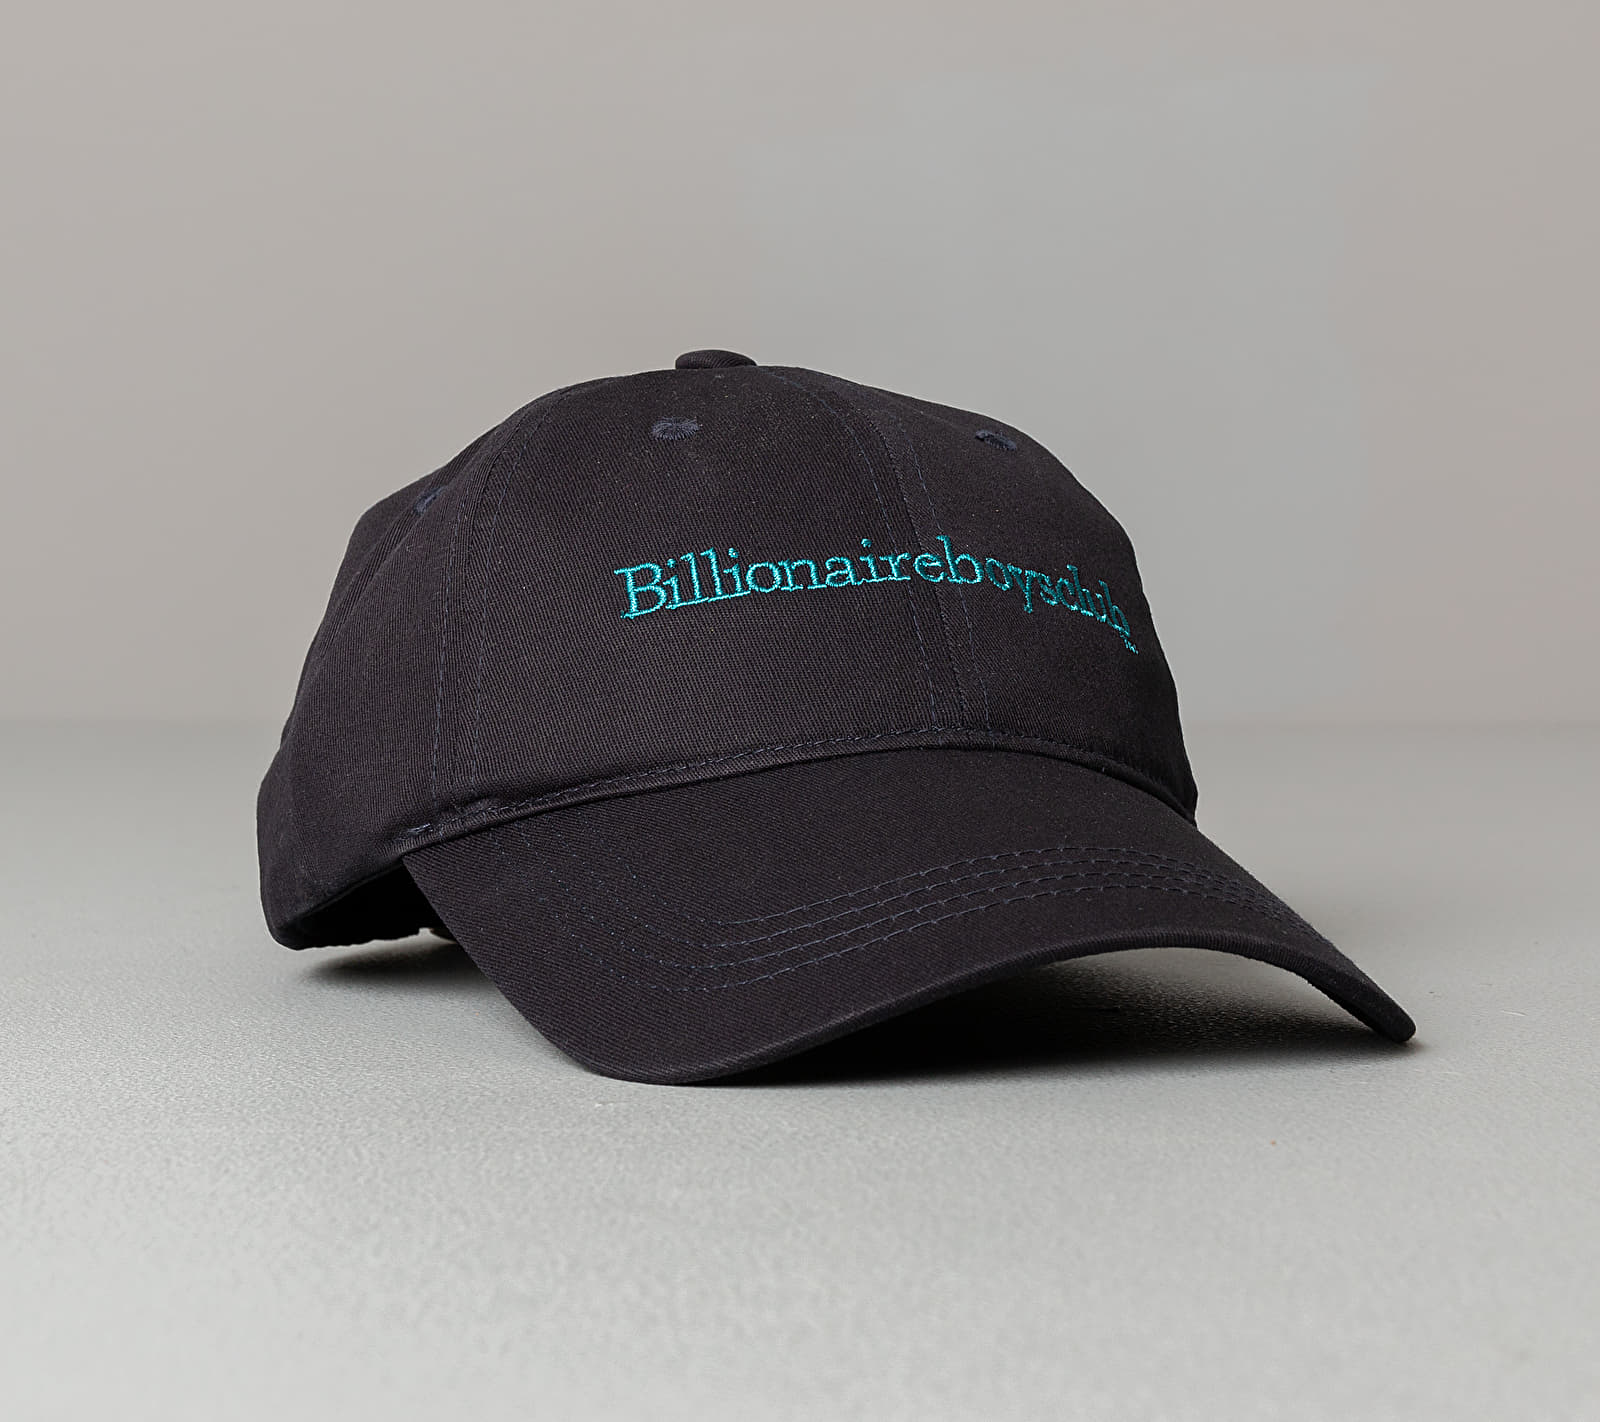 Billionaire Boys Club Embroidered Curved Visor Hat Navy